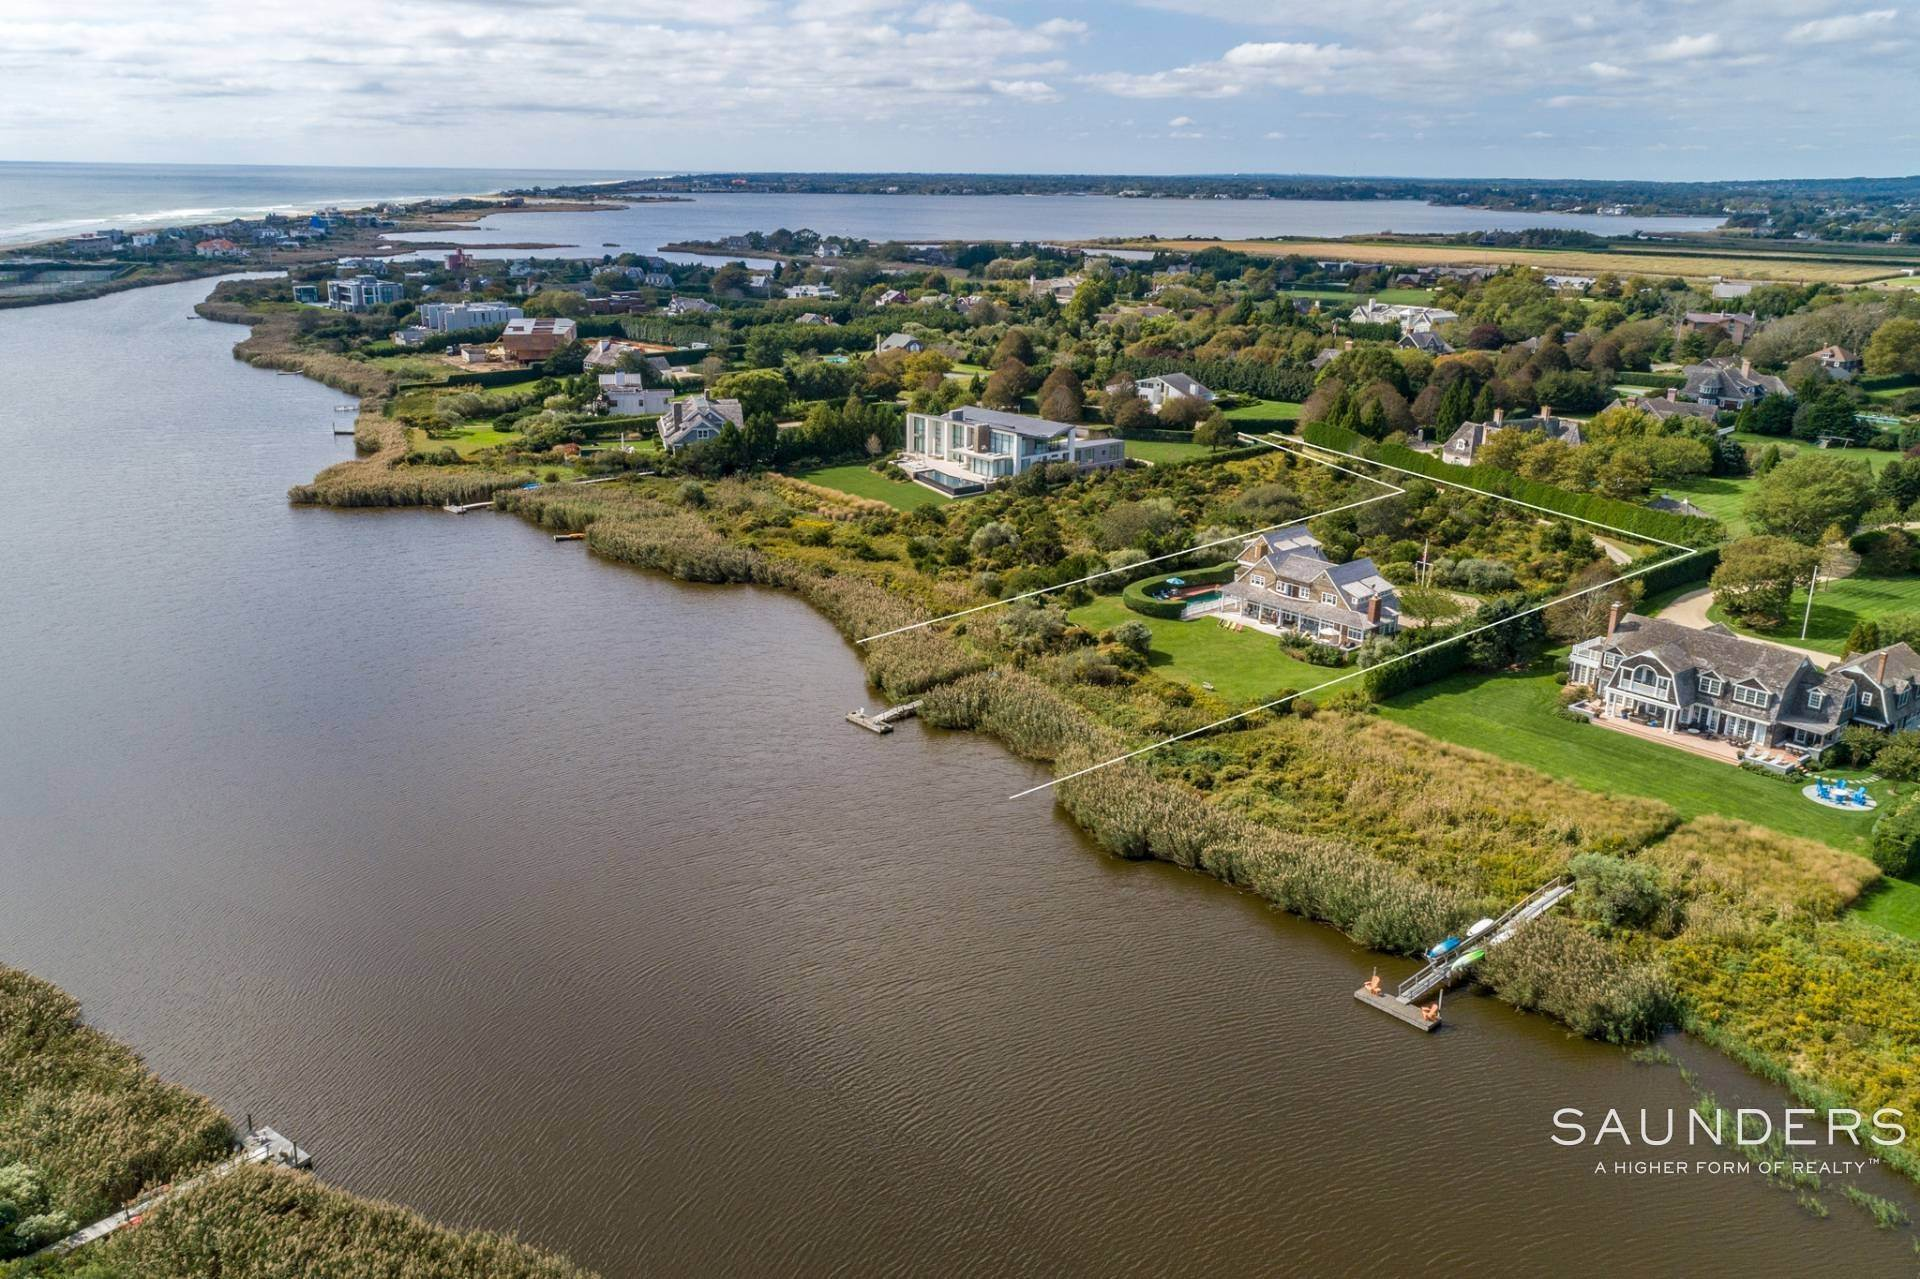 Single Family Homes for Sale at Bridgehampton South Waterfront With Dock & Ocean View 87 Rose Way, Bridgehampton, Southampton Town, NY 11932